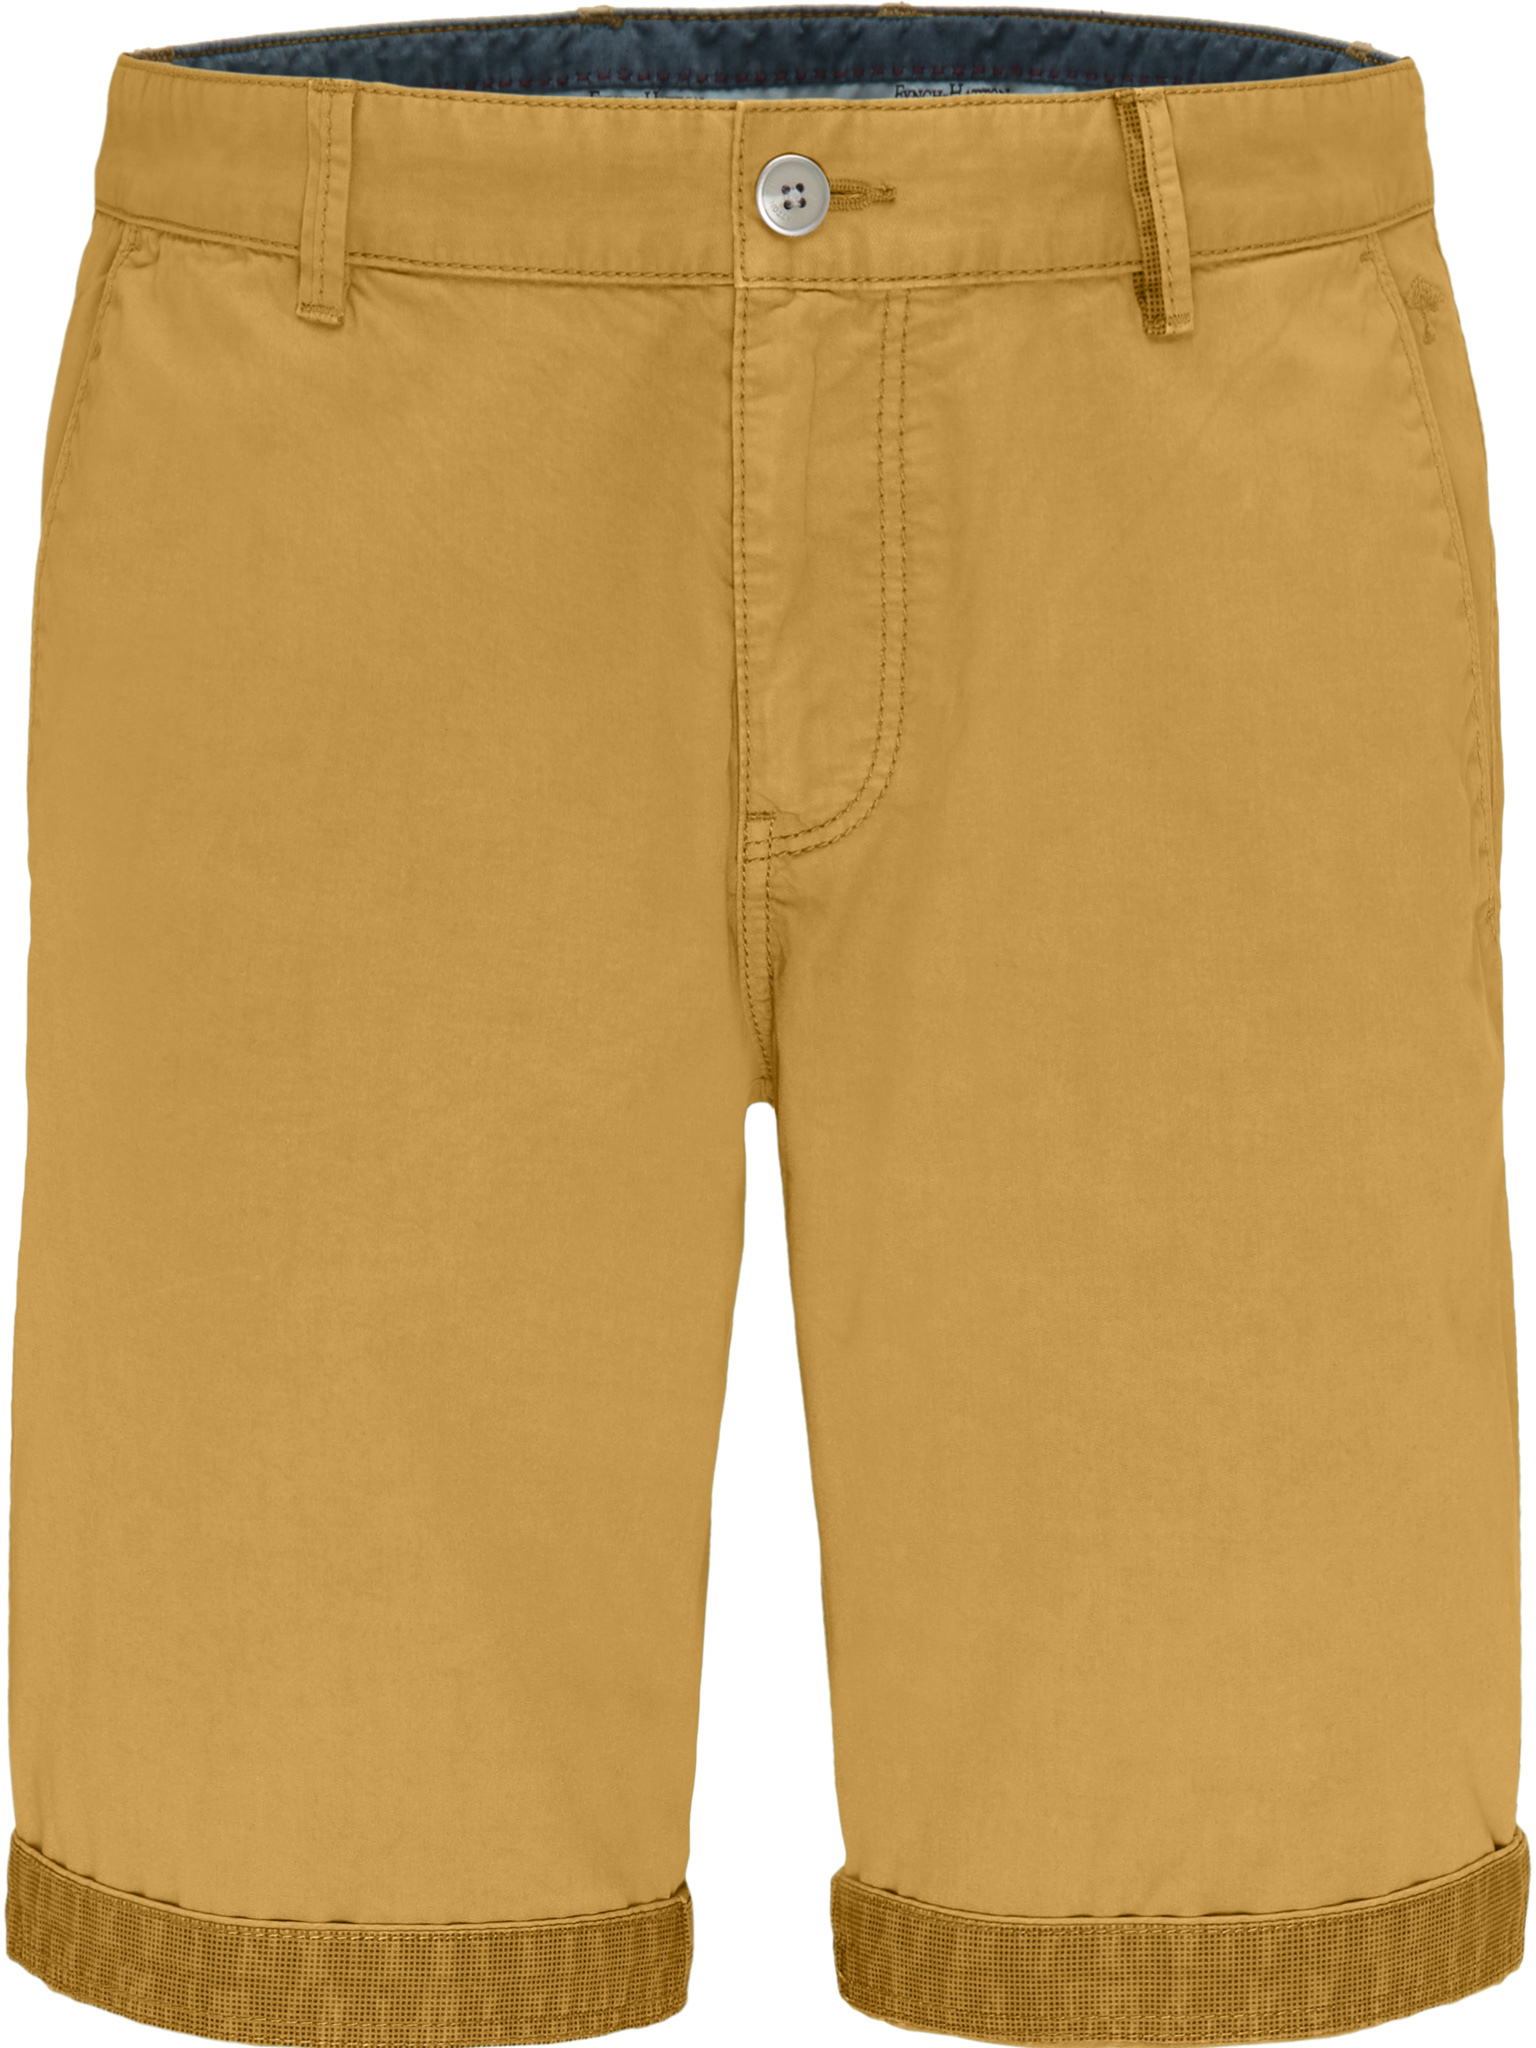 Fynch Hatton semi-taylored smart shorts in yellow